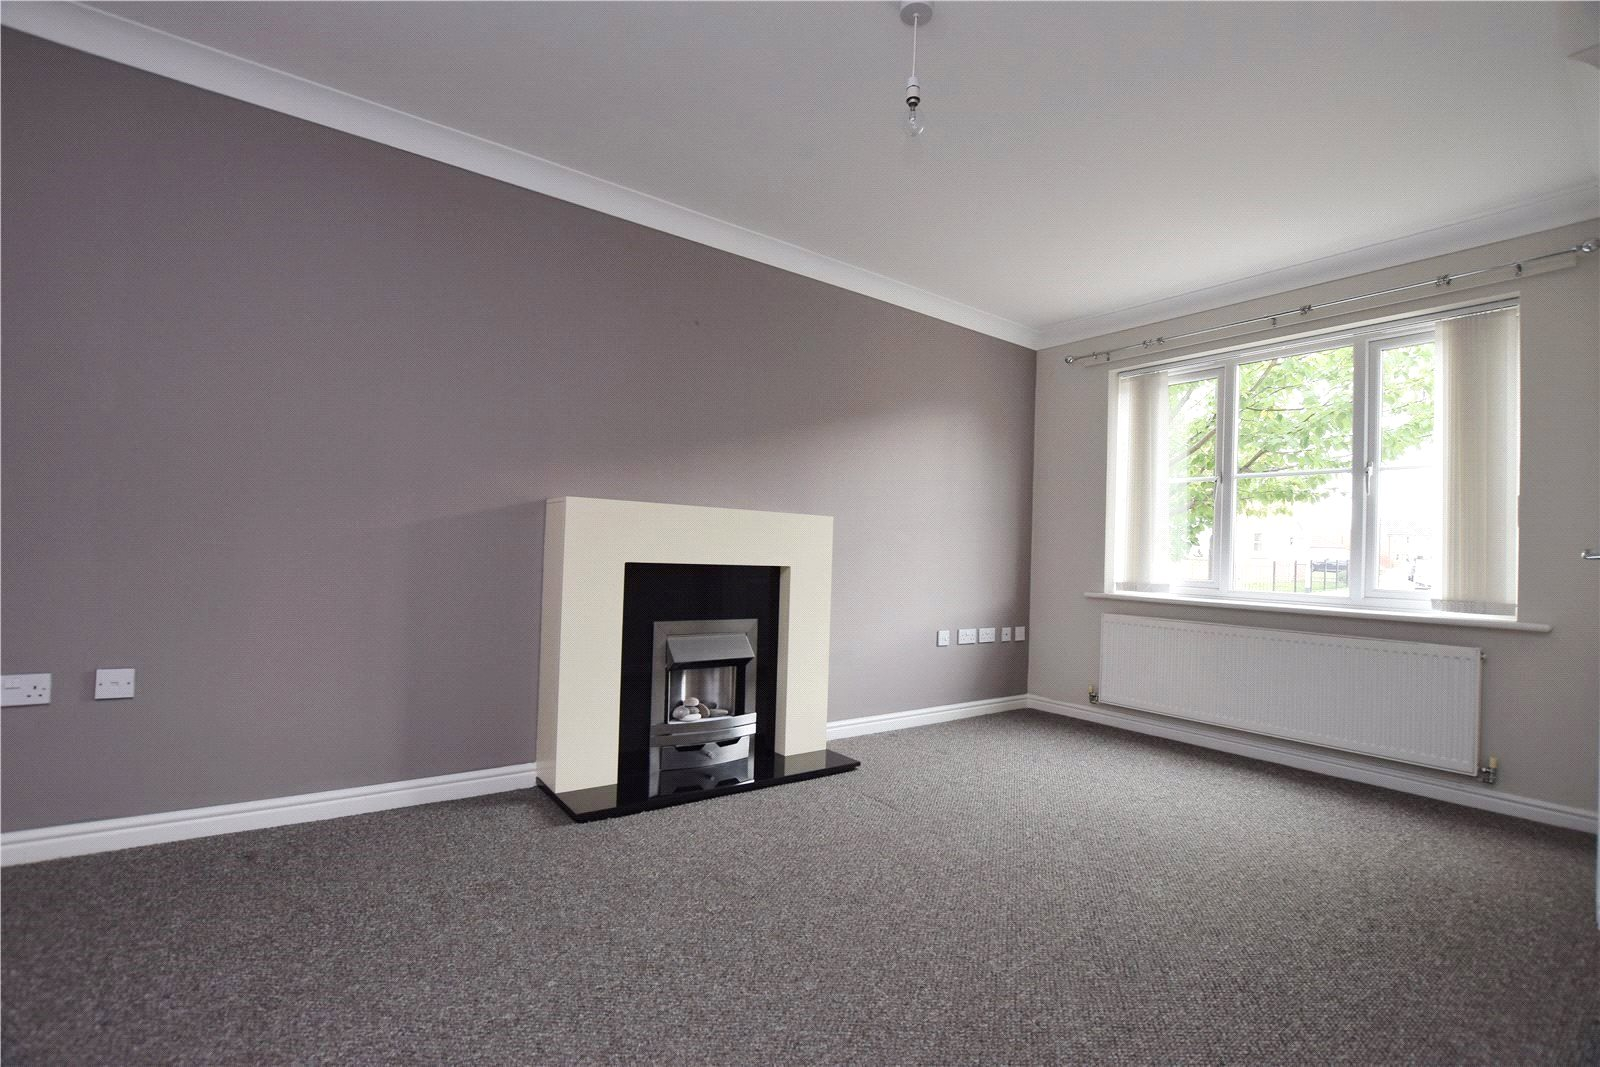 Property to let in Leeds, reception room area fire place and gray carpet, modern